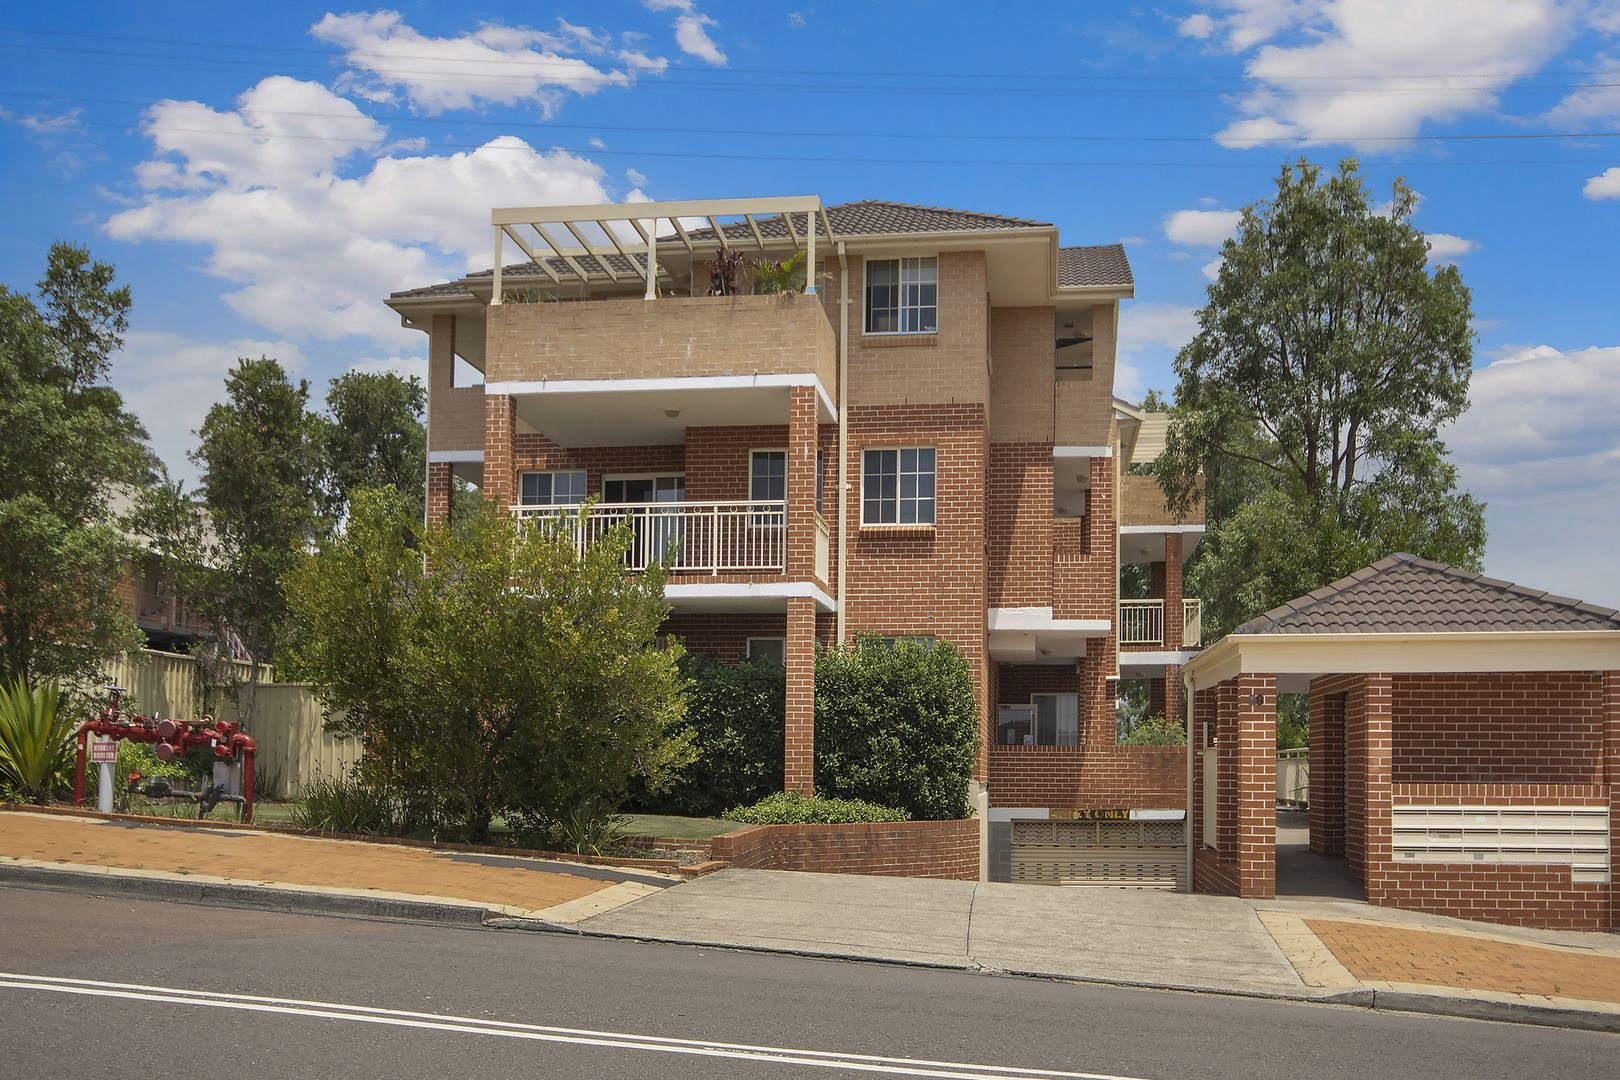 4/29 Alison Road, Wyong NSW 2259, Image 0